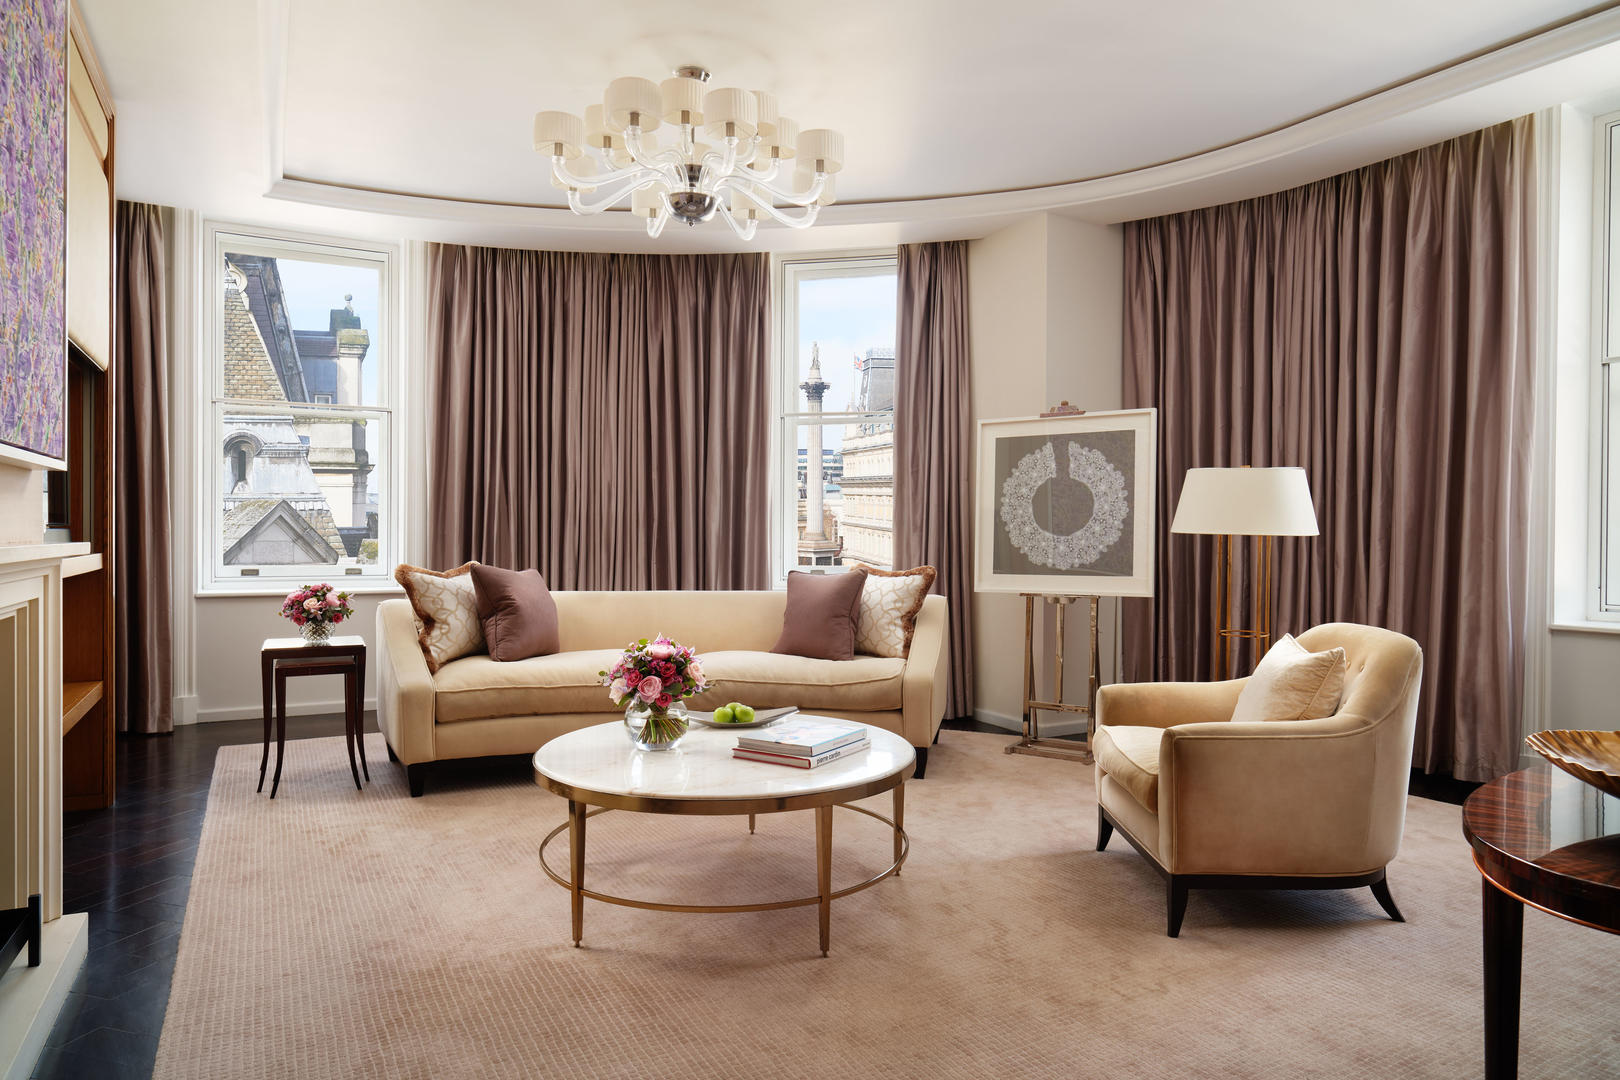 Corinthia-London-Hotel-Trafalgar-Suite-living-room